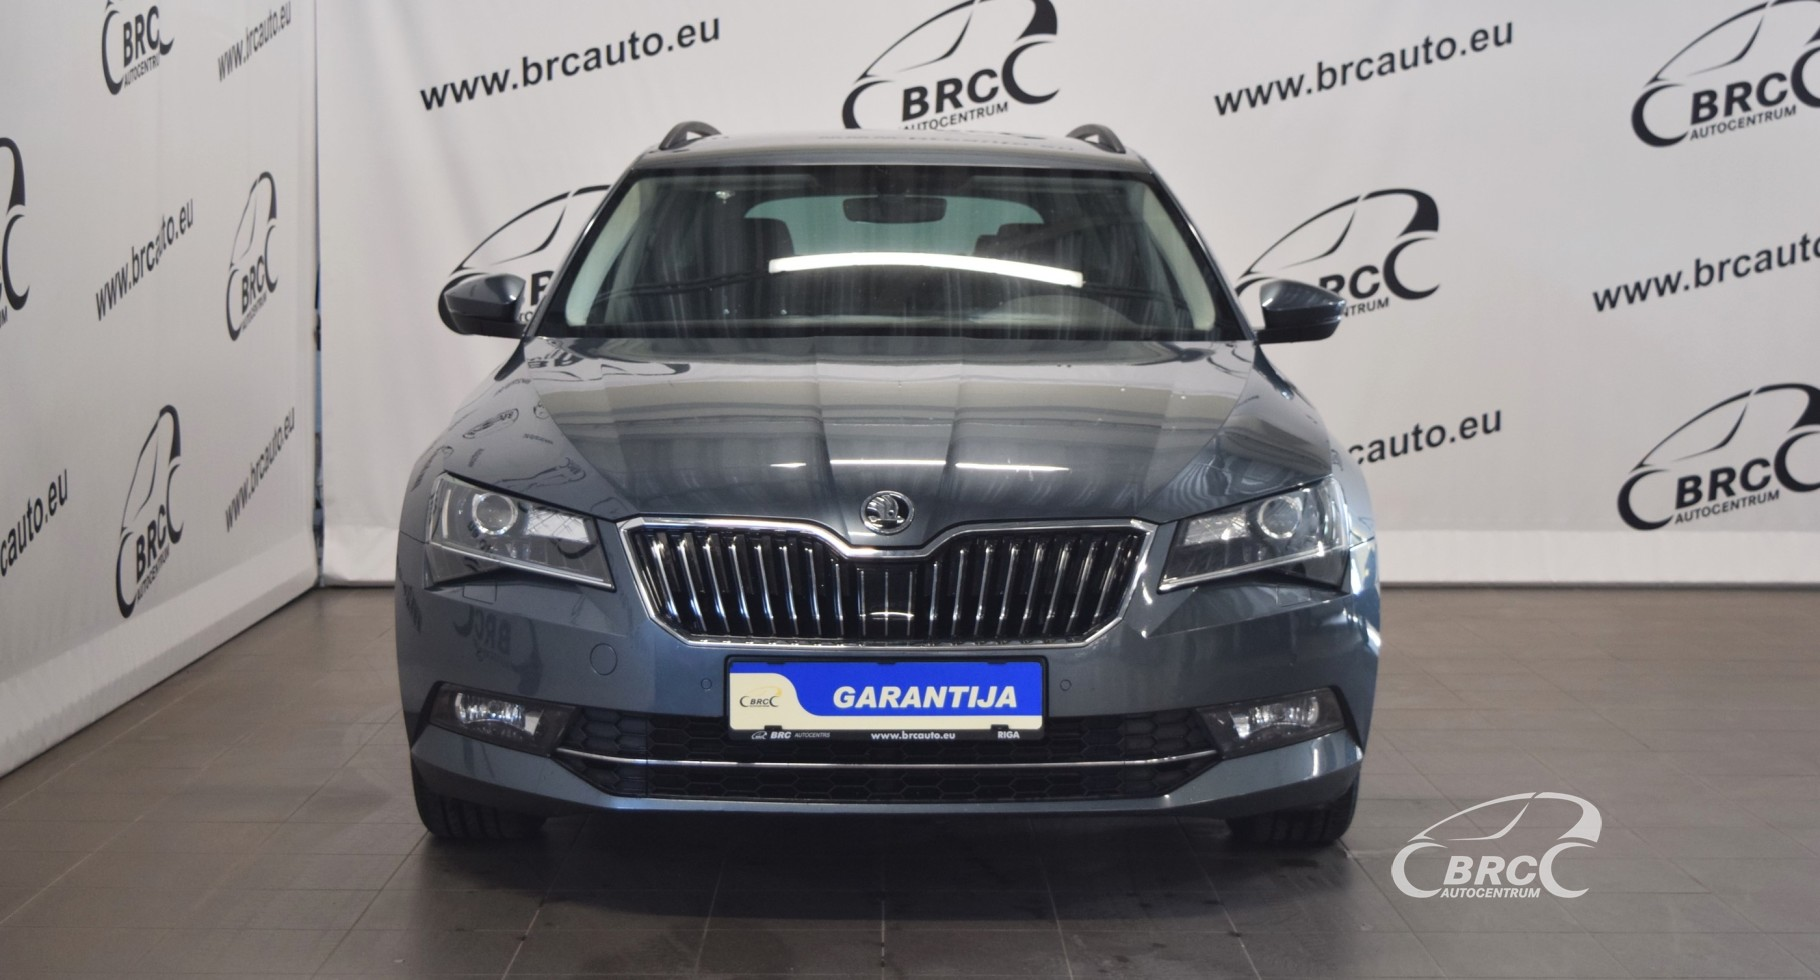 Skoda Superb TDI Executive DSG